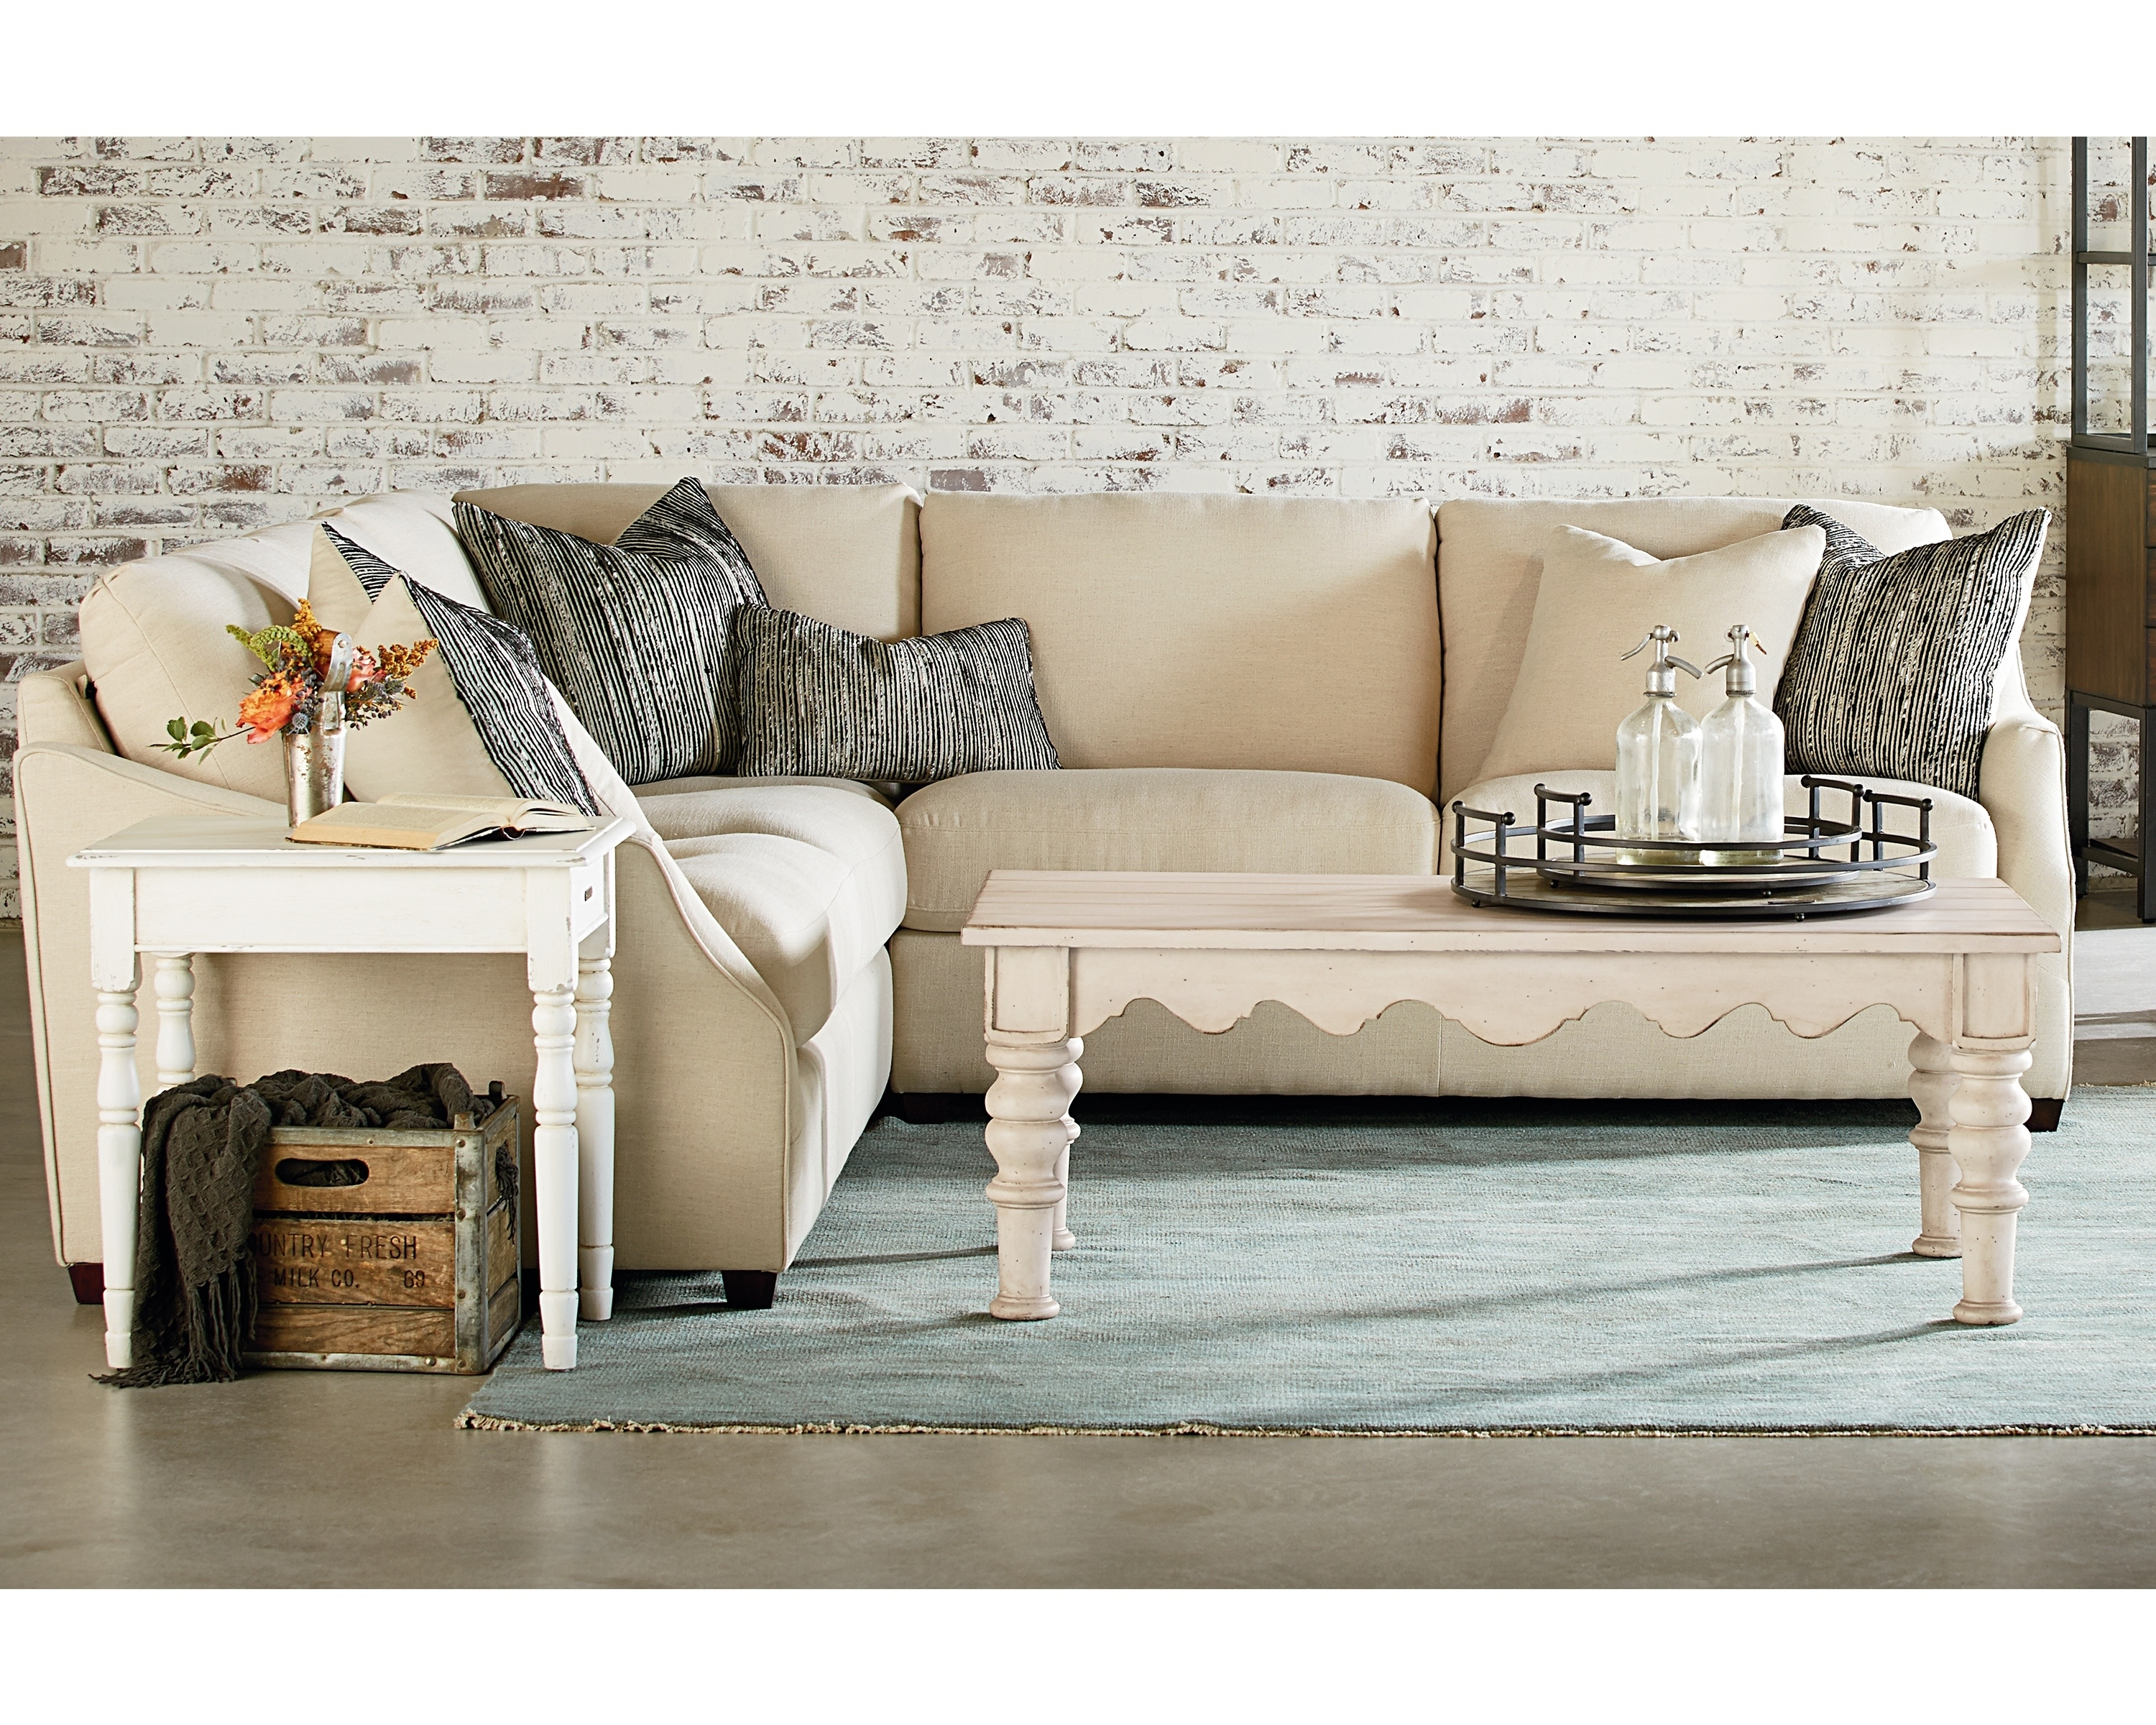 Homestead Sectional – Magnolia Home For Magnolia Home Homestead 4 Piece Sectionals By Joanna Gaines (Image 7 of 25)